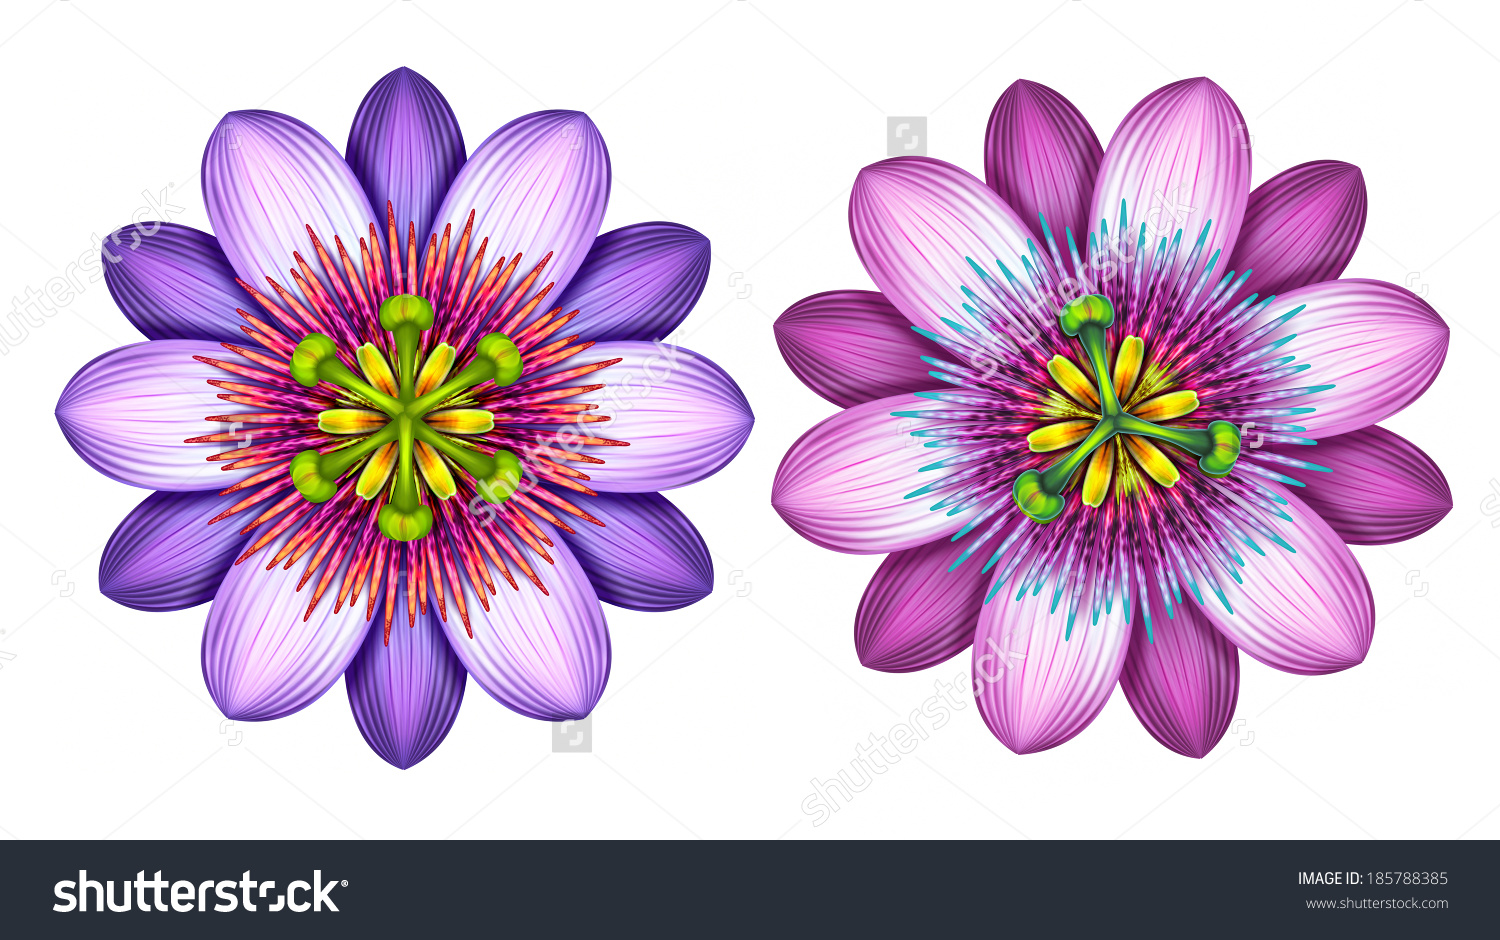 Passion Flower clipart #17, Download drawings